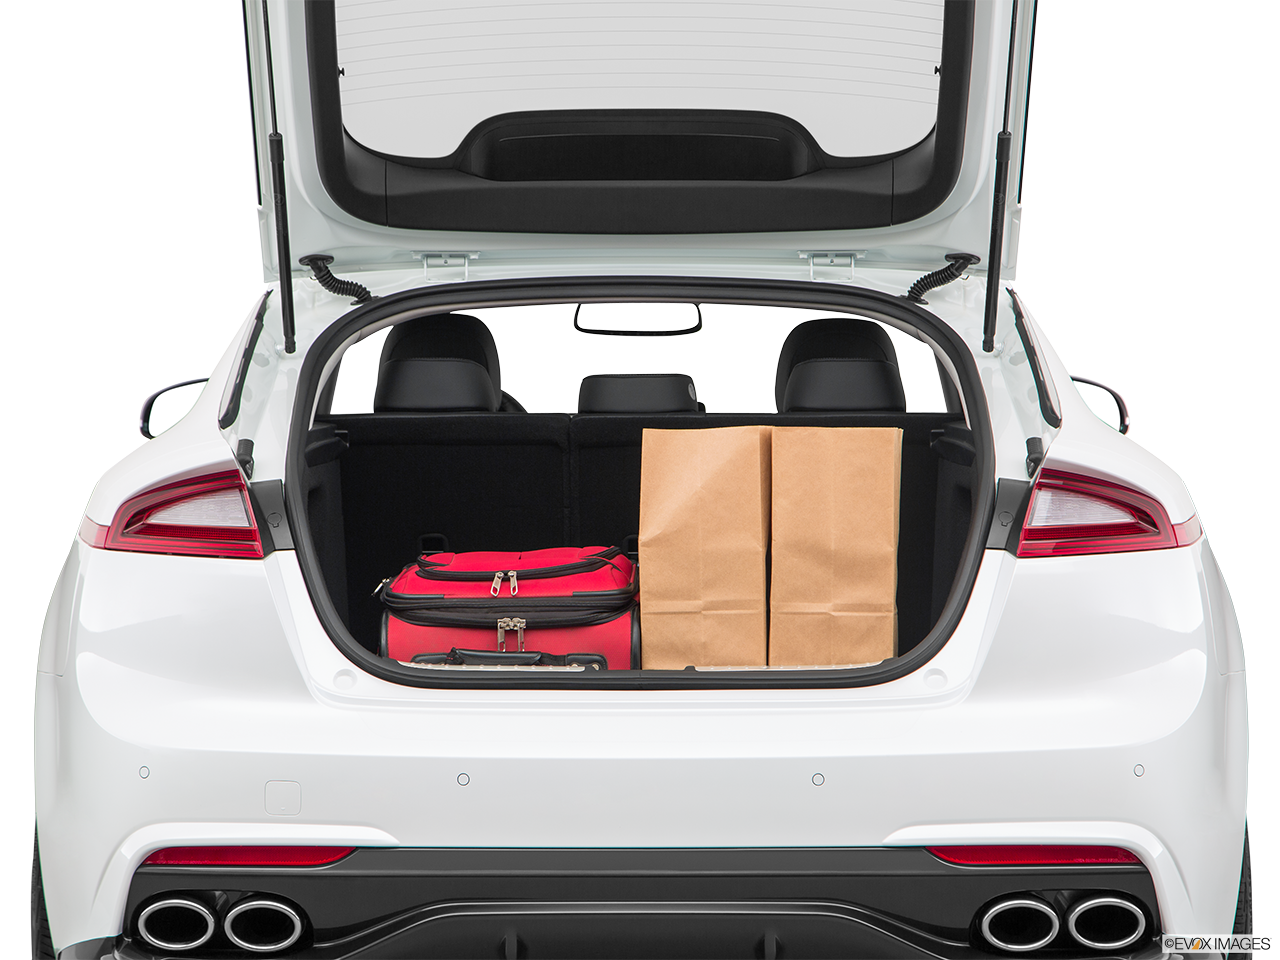 2019 Kia Stinger Cargo Space